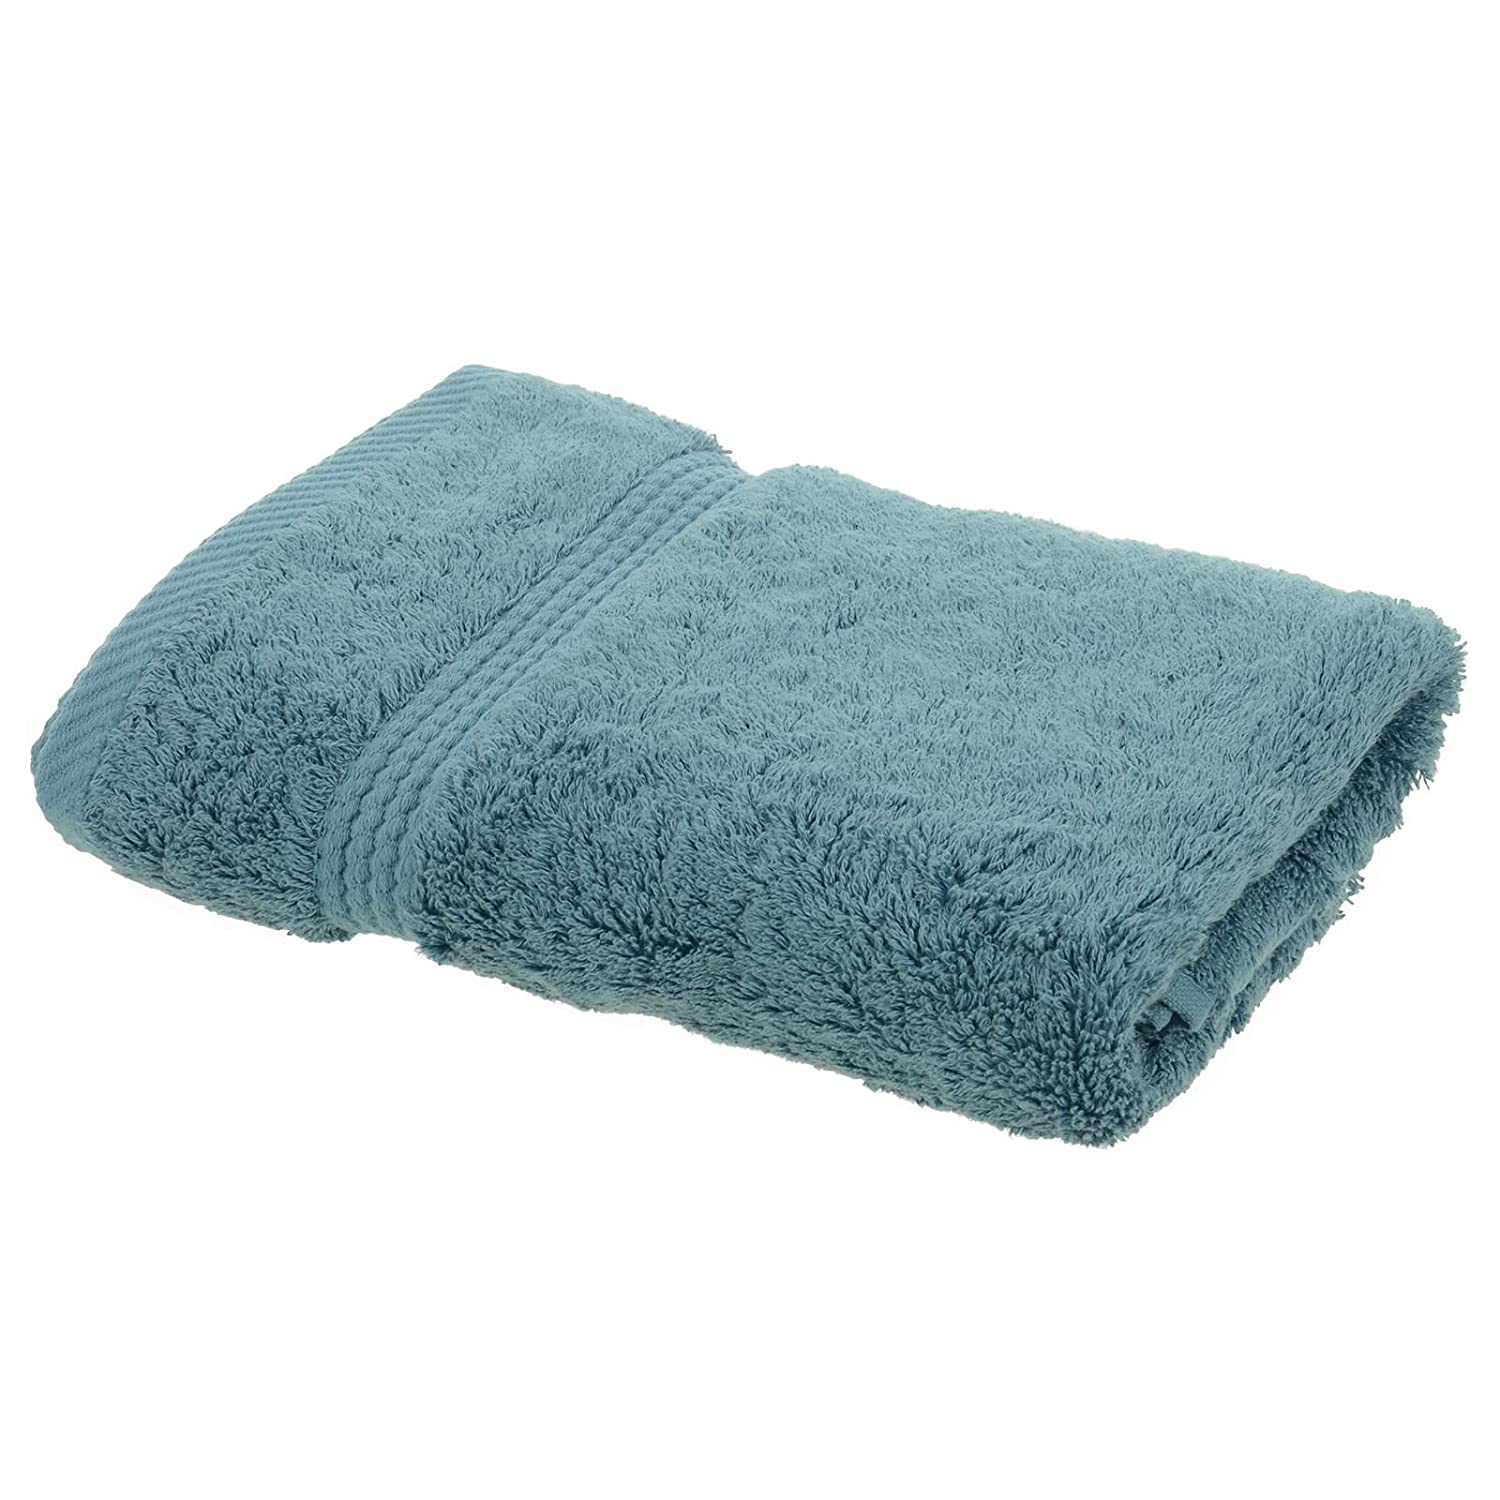 Bamboo Bliss Teal Green Bamboo Luxury Bath Sheet Plush Soft Bathroom Bath Linen Large Towel 90 x 165cm XS-Stock.com Ltd